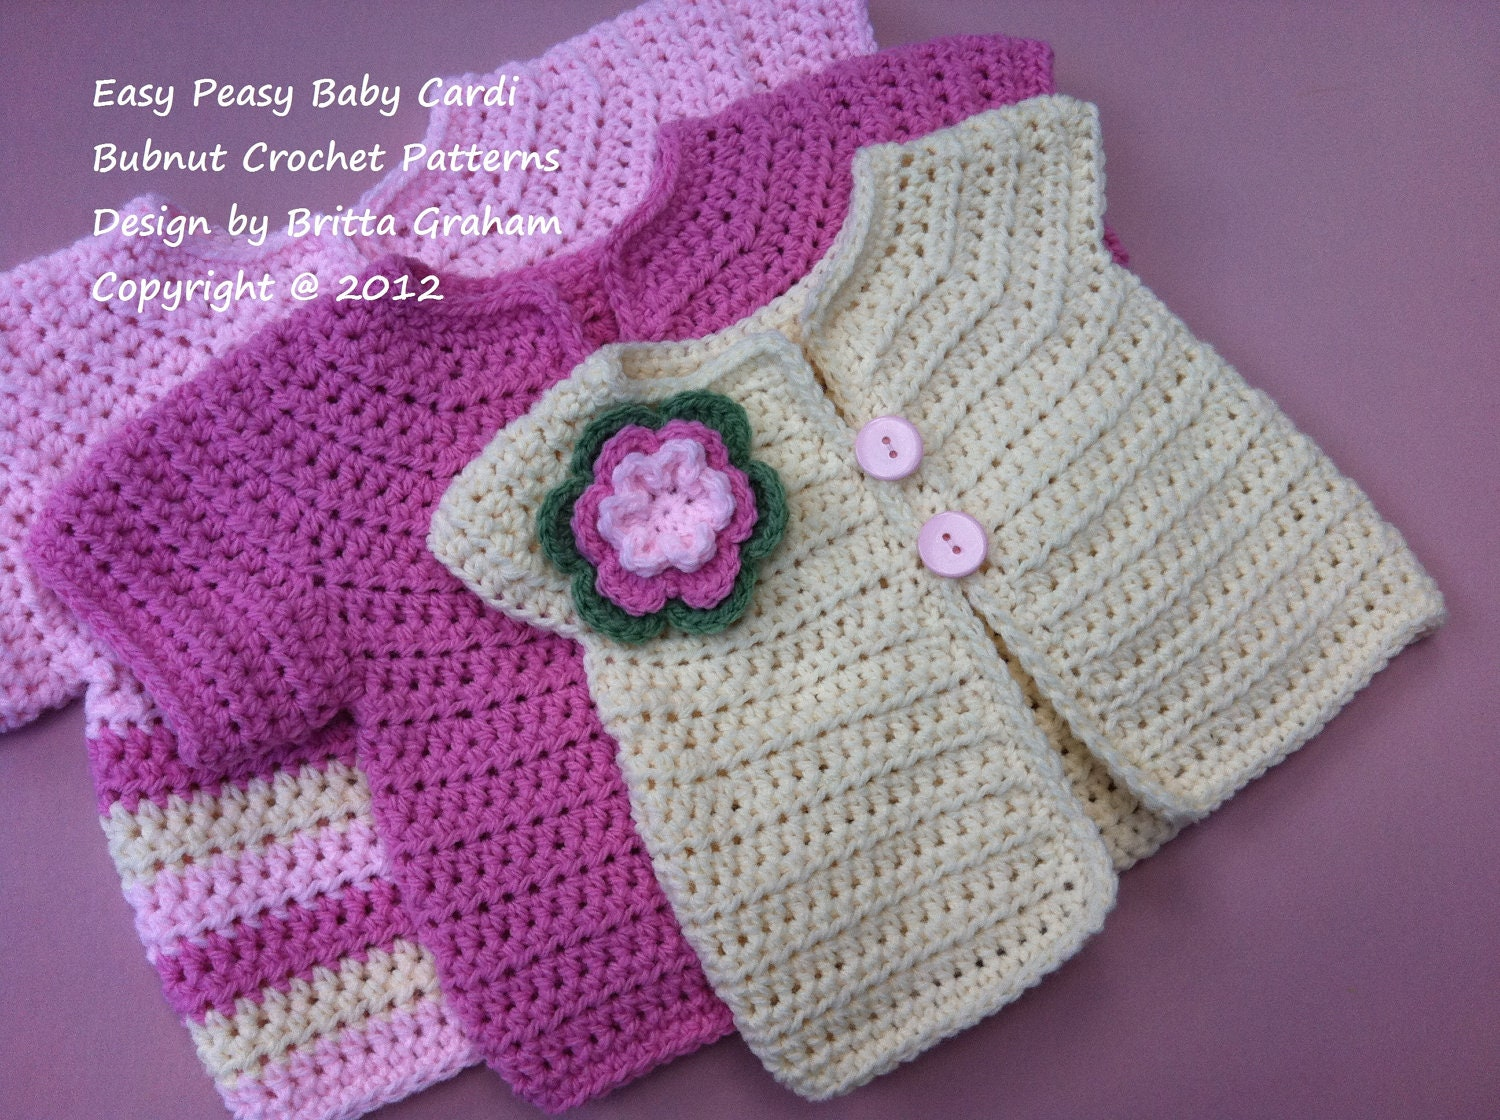 Crochet Baby Jacket Pattern : Crochet Baby Sweater Patterns Easy Free www.galleryhip ...